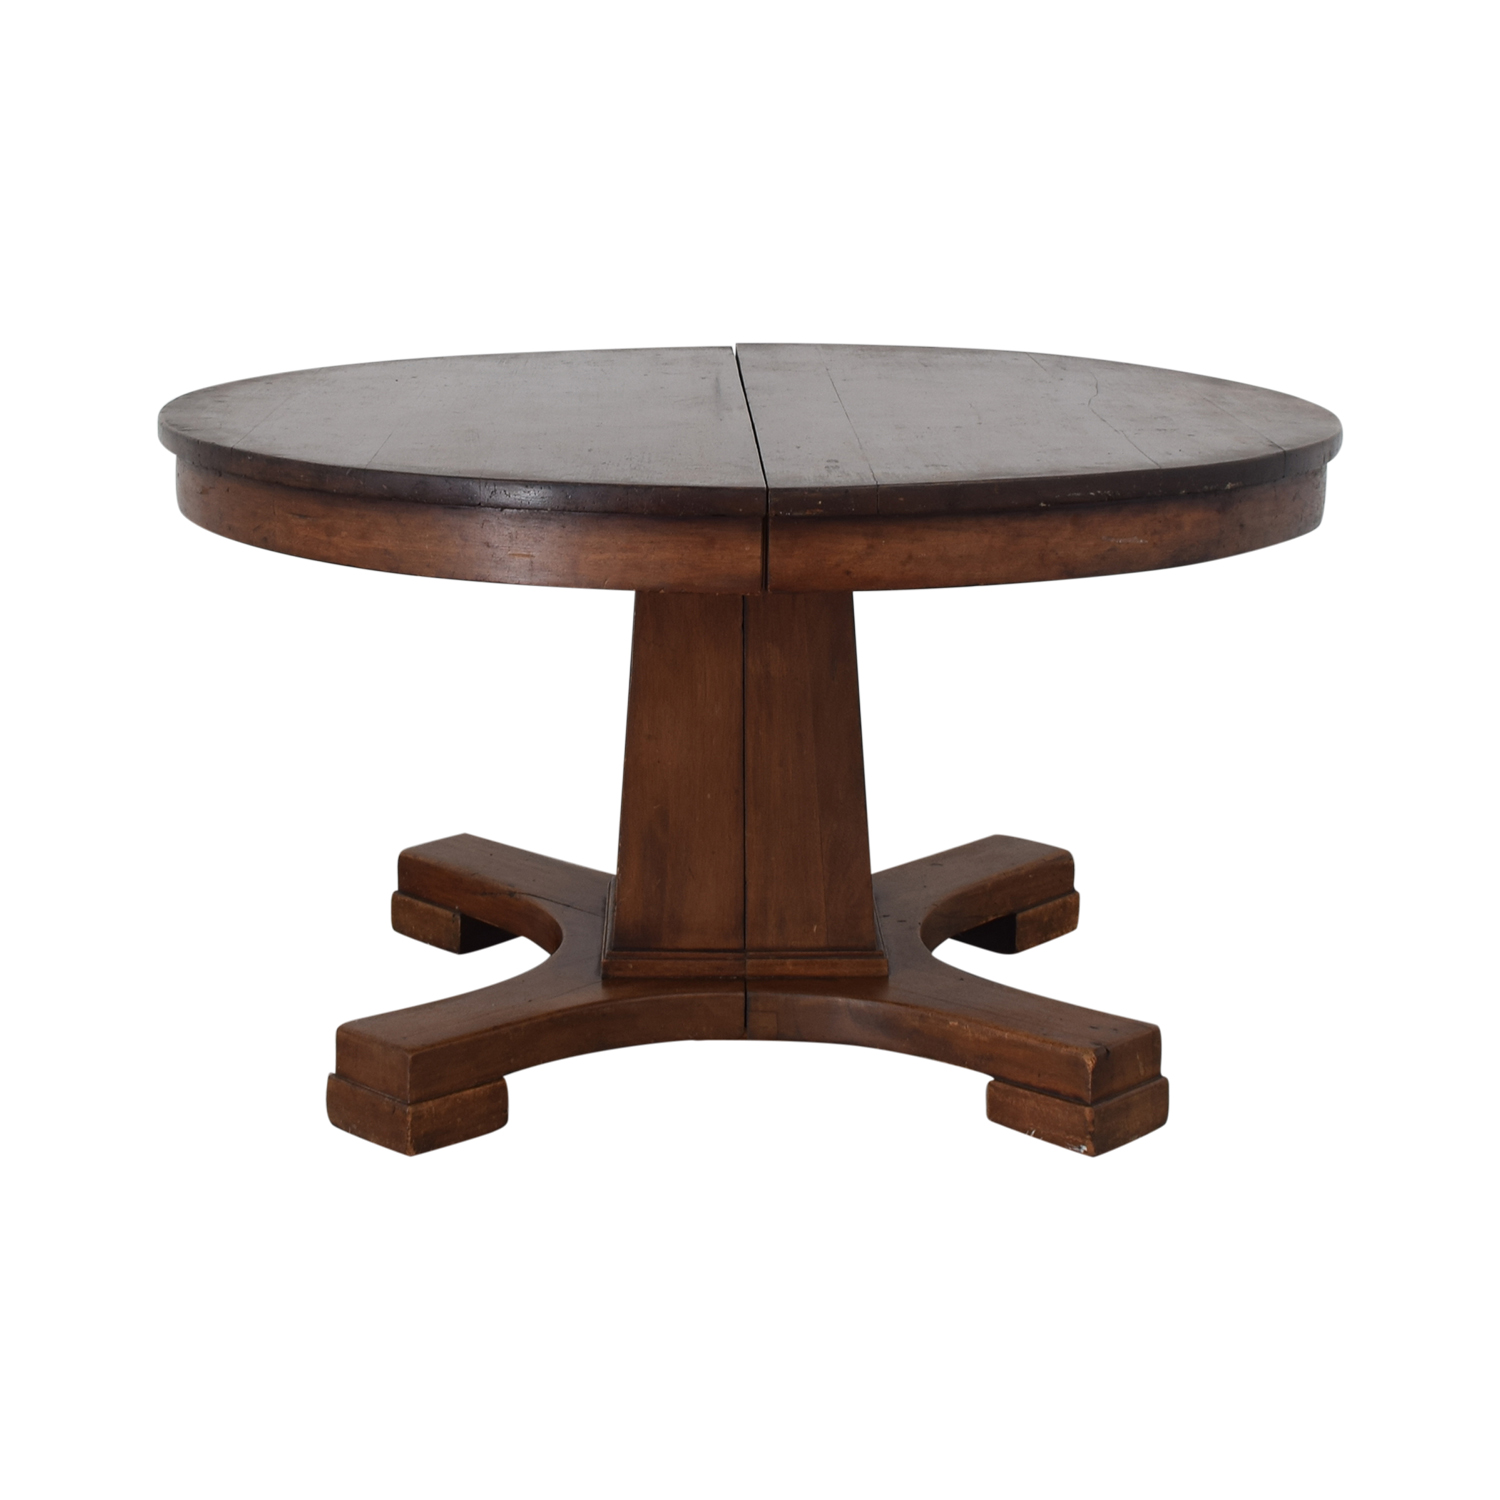 Vintage Round Pedestal Dining Table Dinner Tables